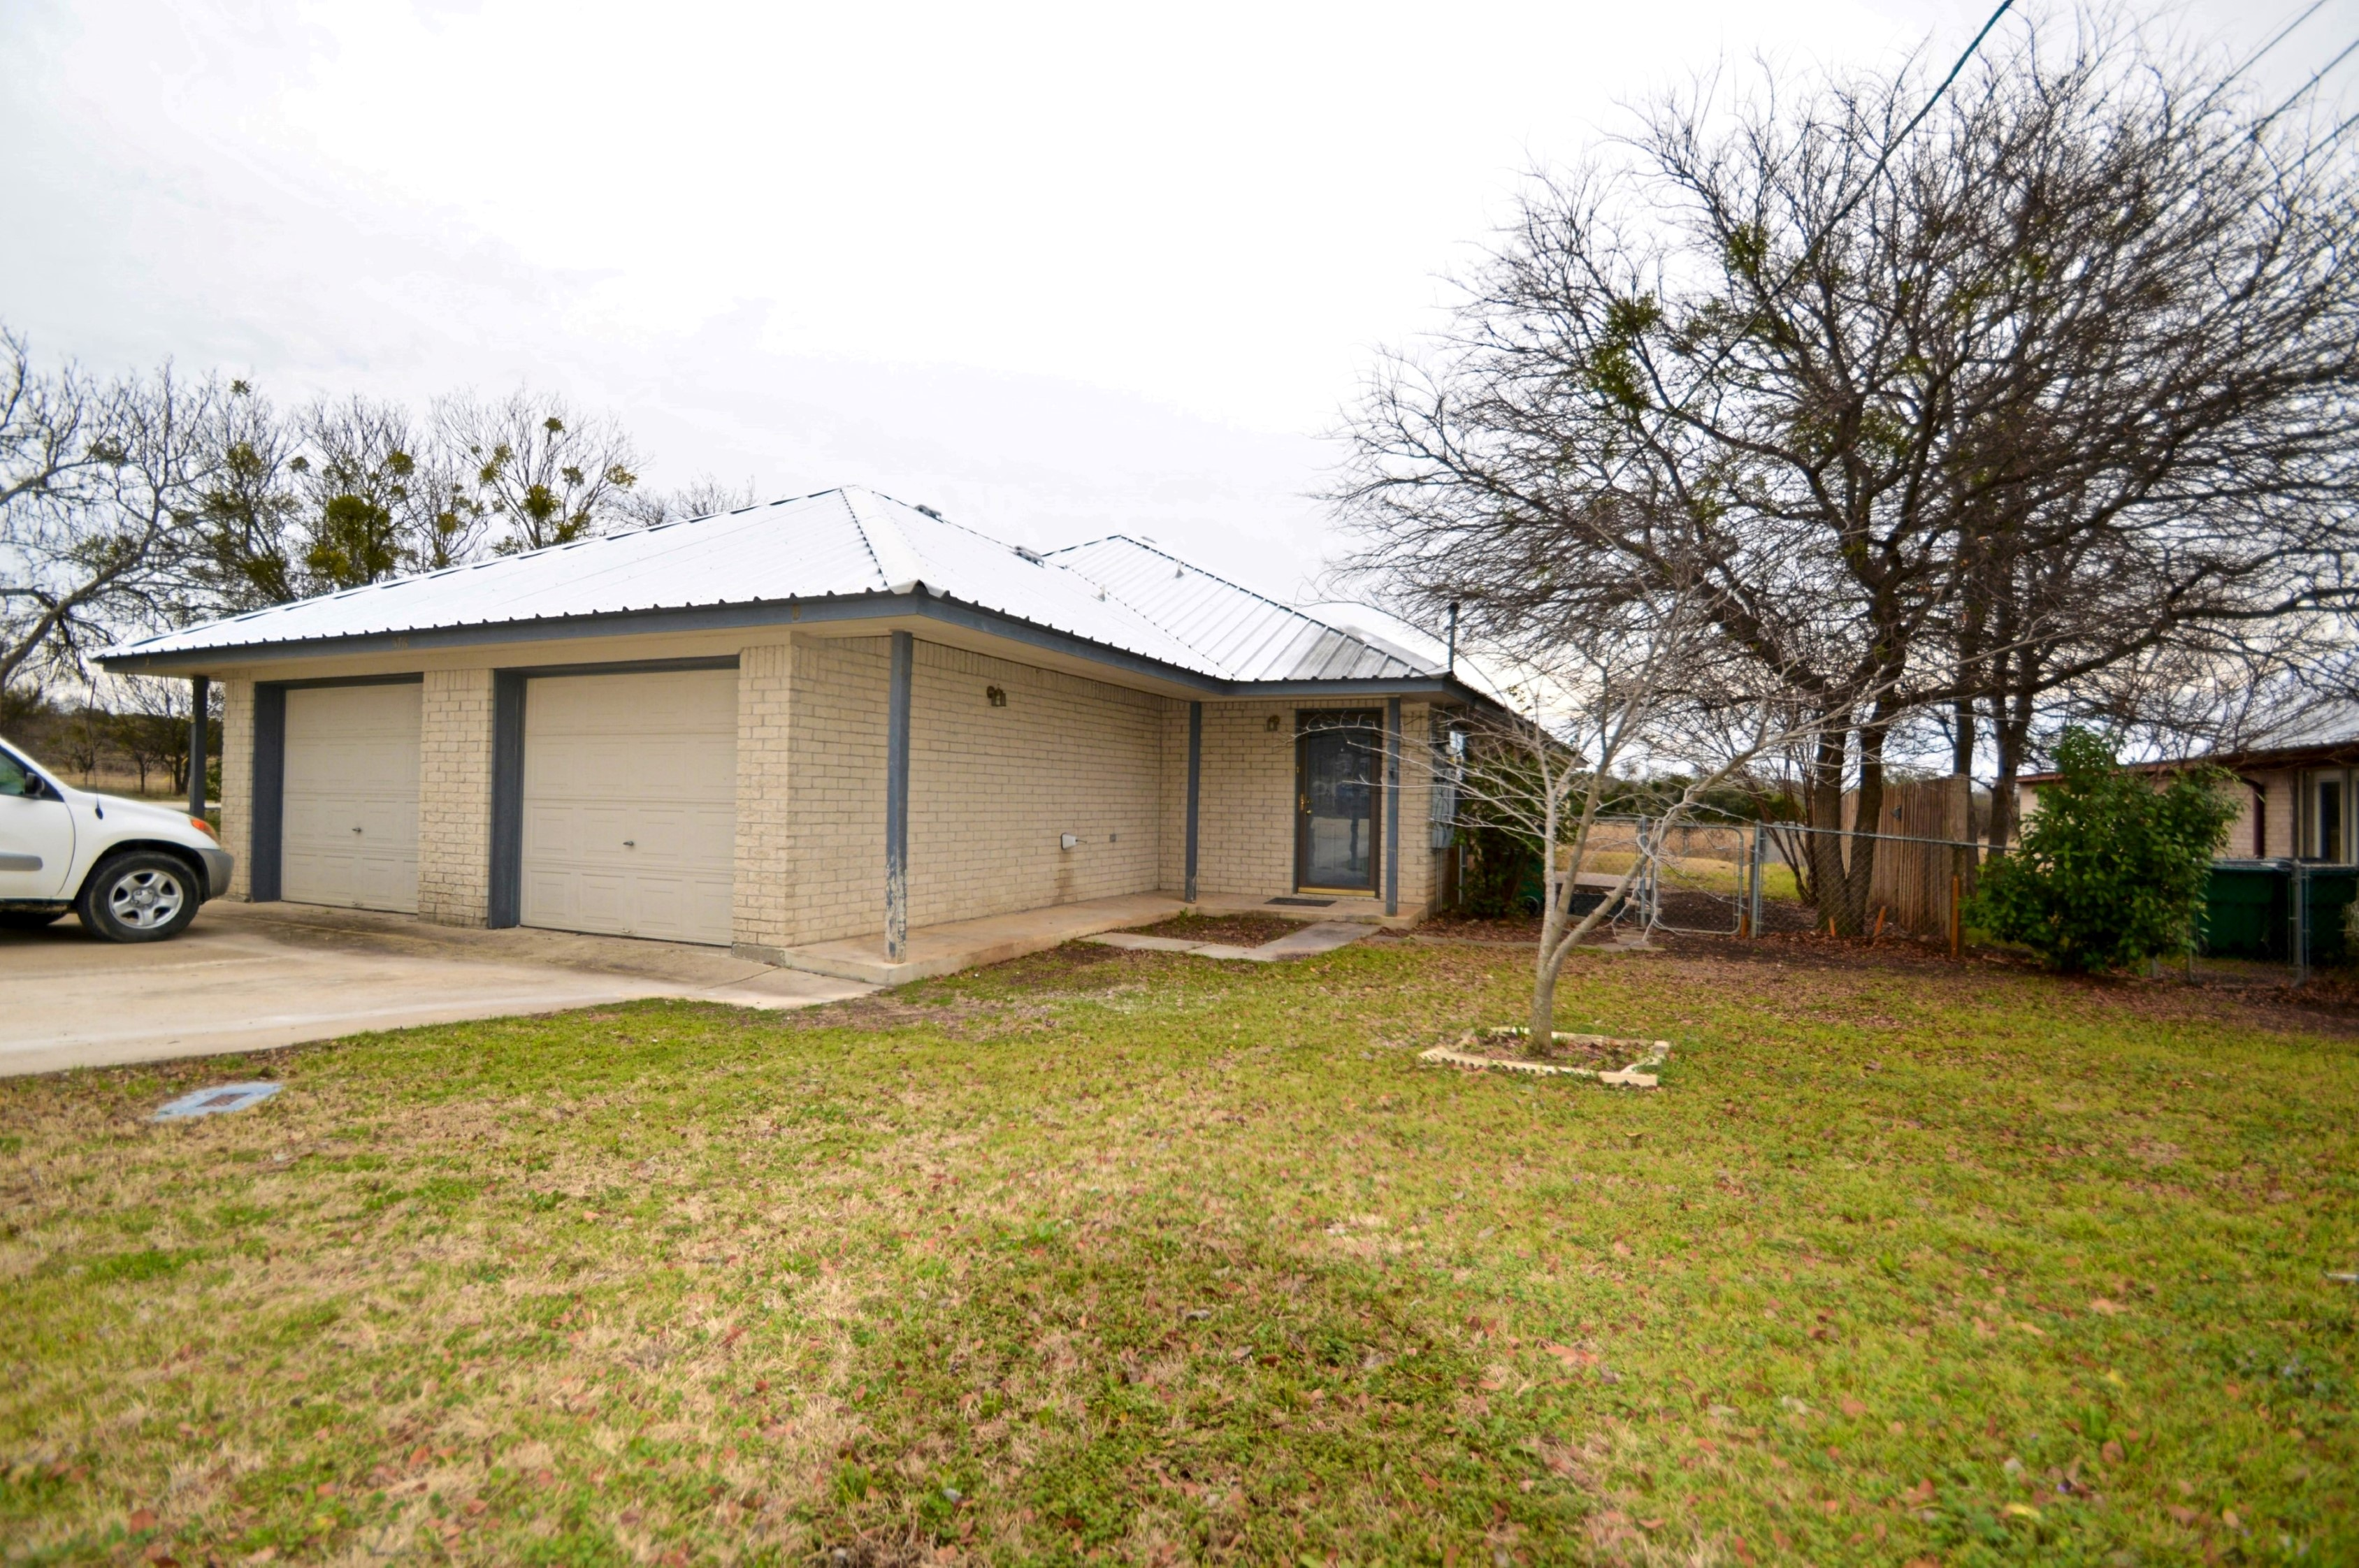 Home for sale: 516 A & B  Walnut Street, Lometa, Tx